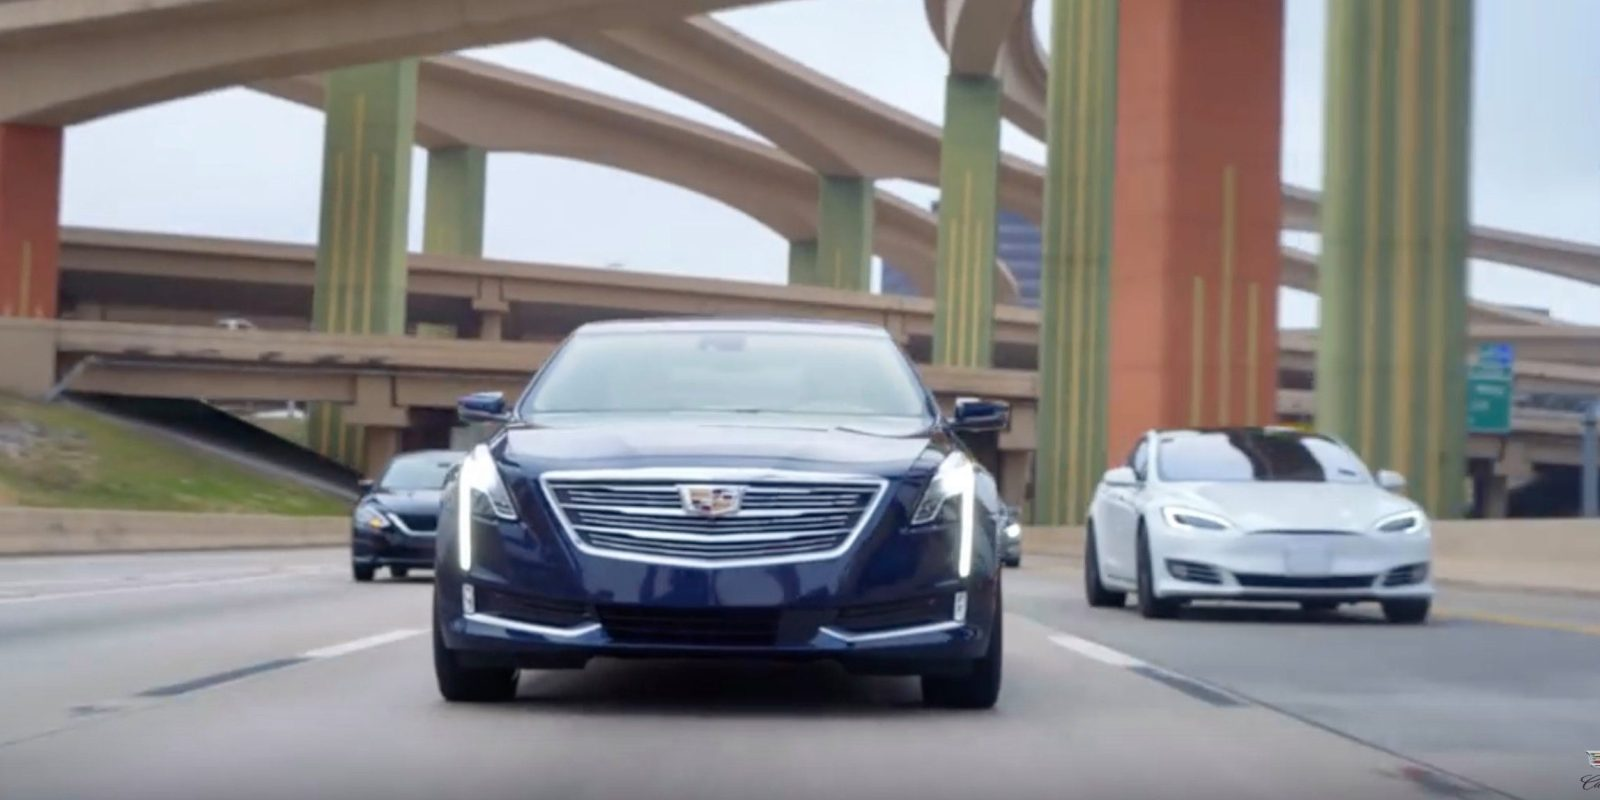 Gm Plans To Challenge Tesla With Cadillac As Its Lead Electric Vehicle Brand